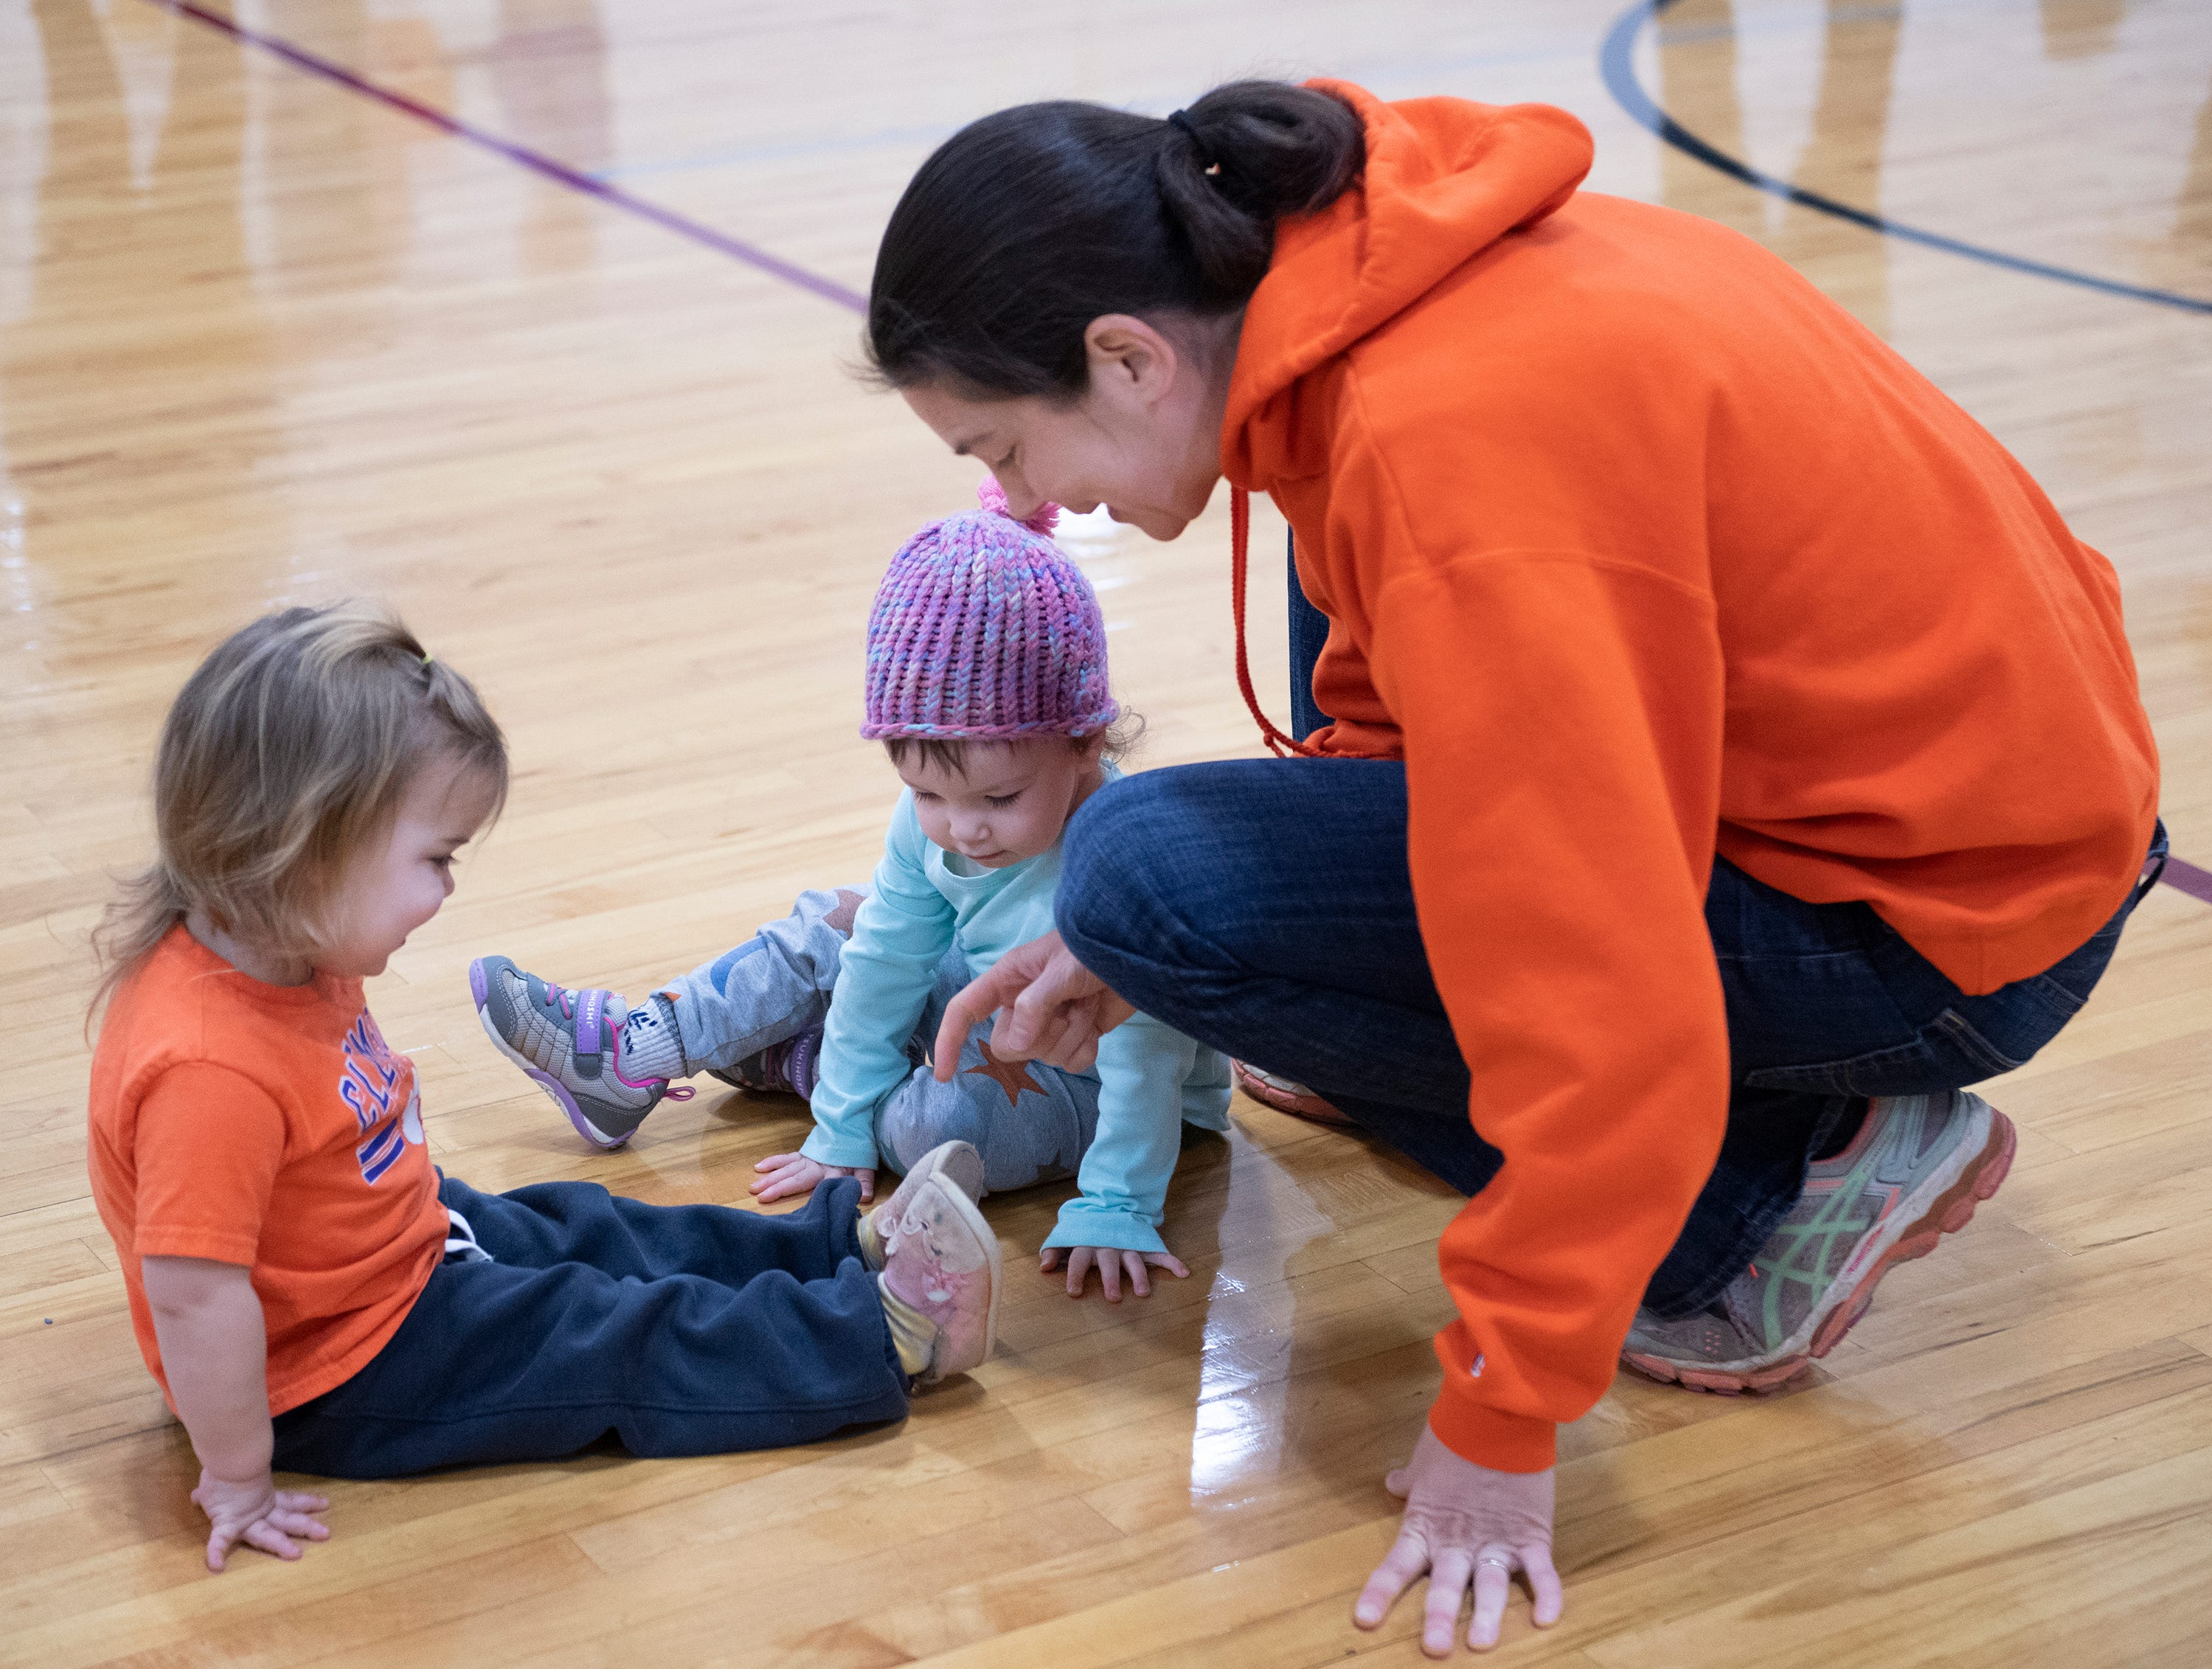 From right, Devon Gorry talks with Sage Gorry, 1, and May Shaughnessy, 2, during the Smart Start Basketball program at Central-Clemson Recreational Center Saturday, Feb. 2, 2019.